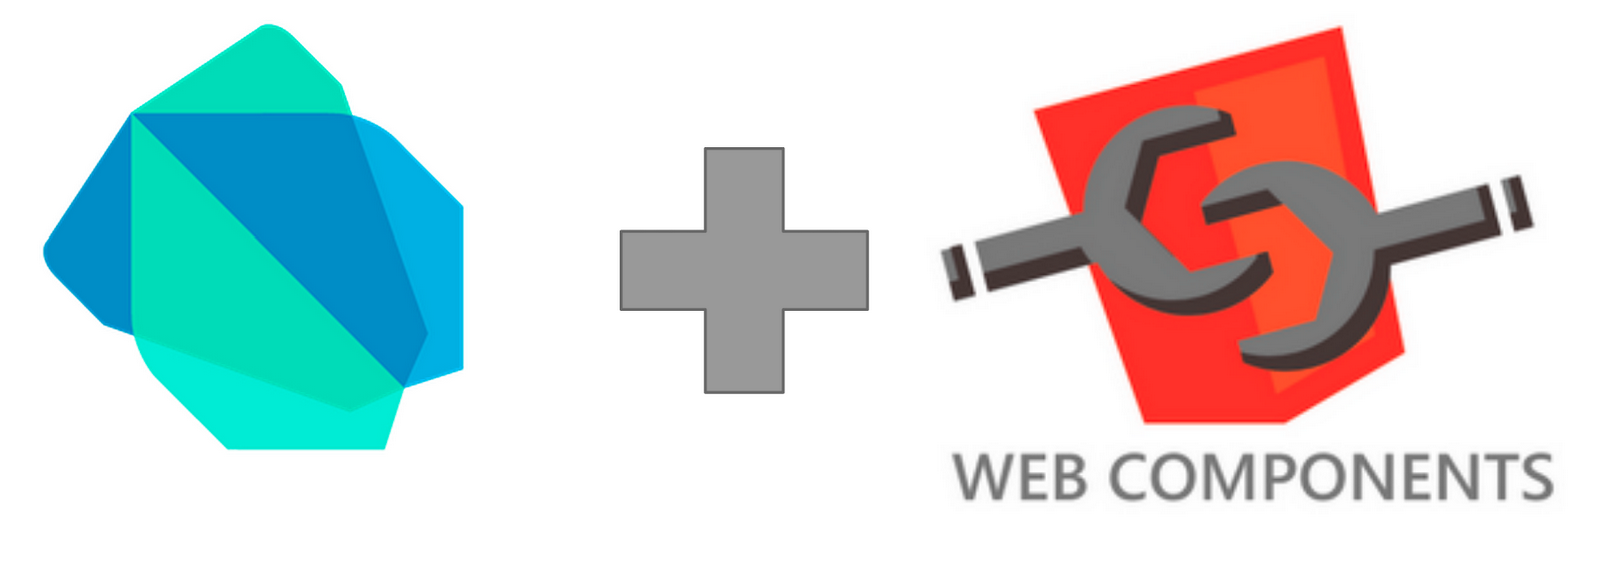 Your First Web Component with Dart